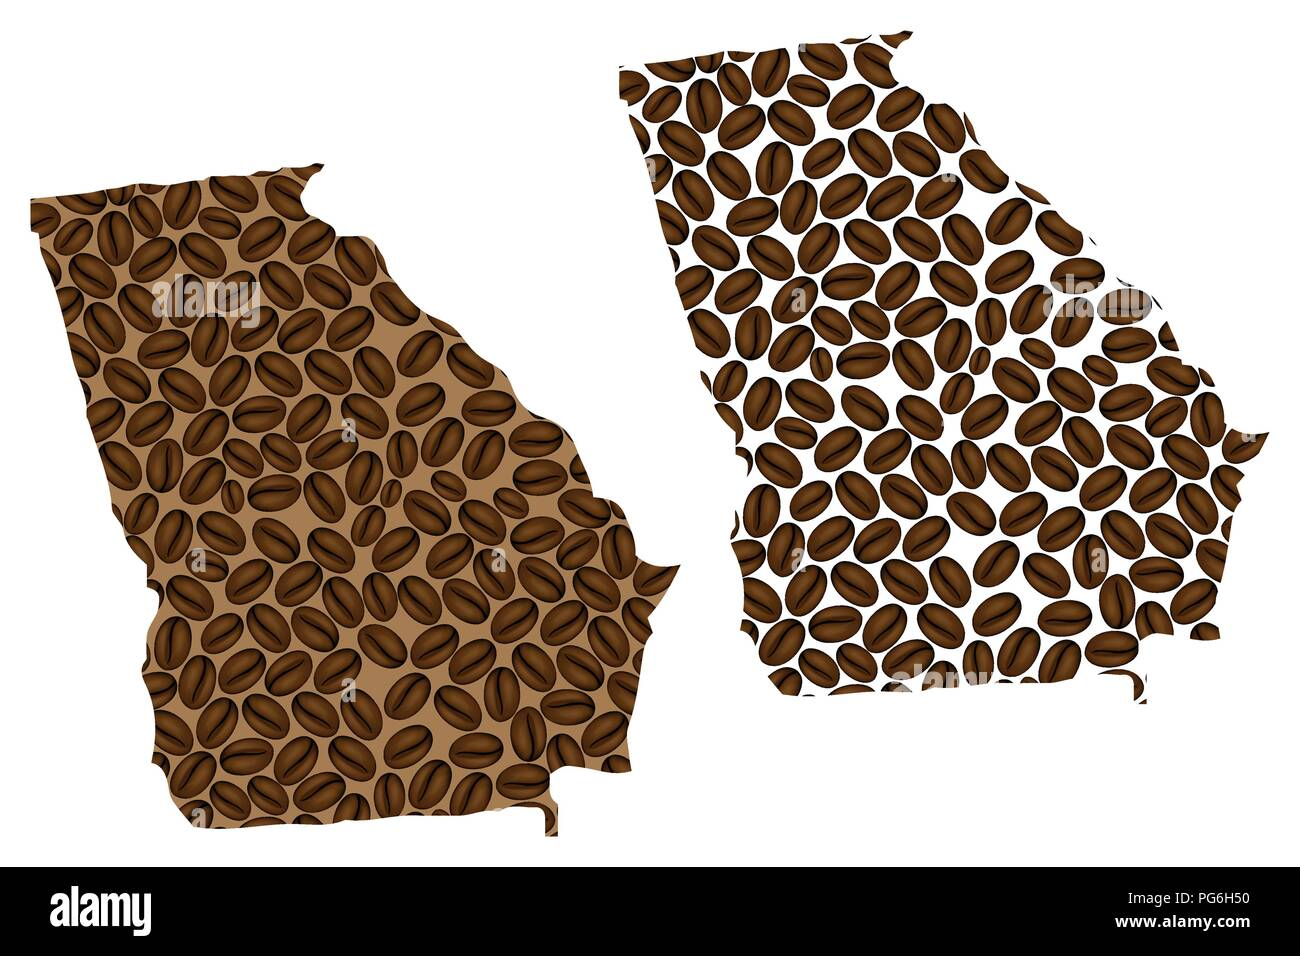 Georgia (United States of America) -  map of coffee bean, Georgia (U.S. state) map made of coffee beans, - Stock Vector